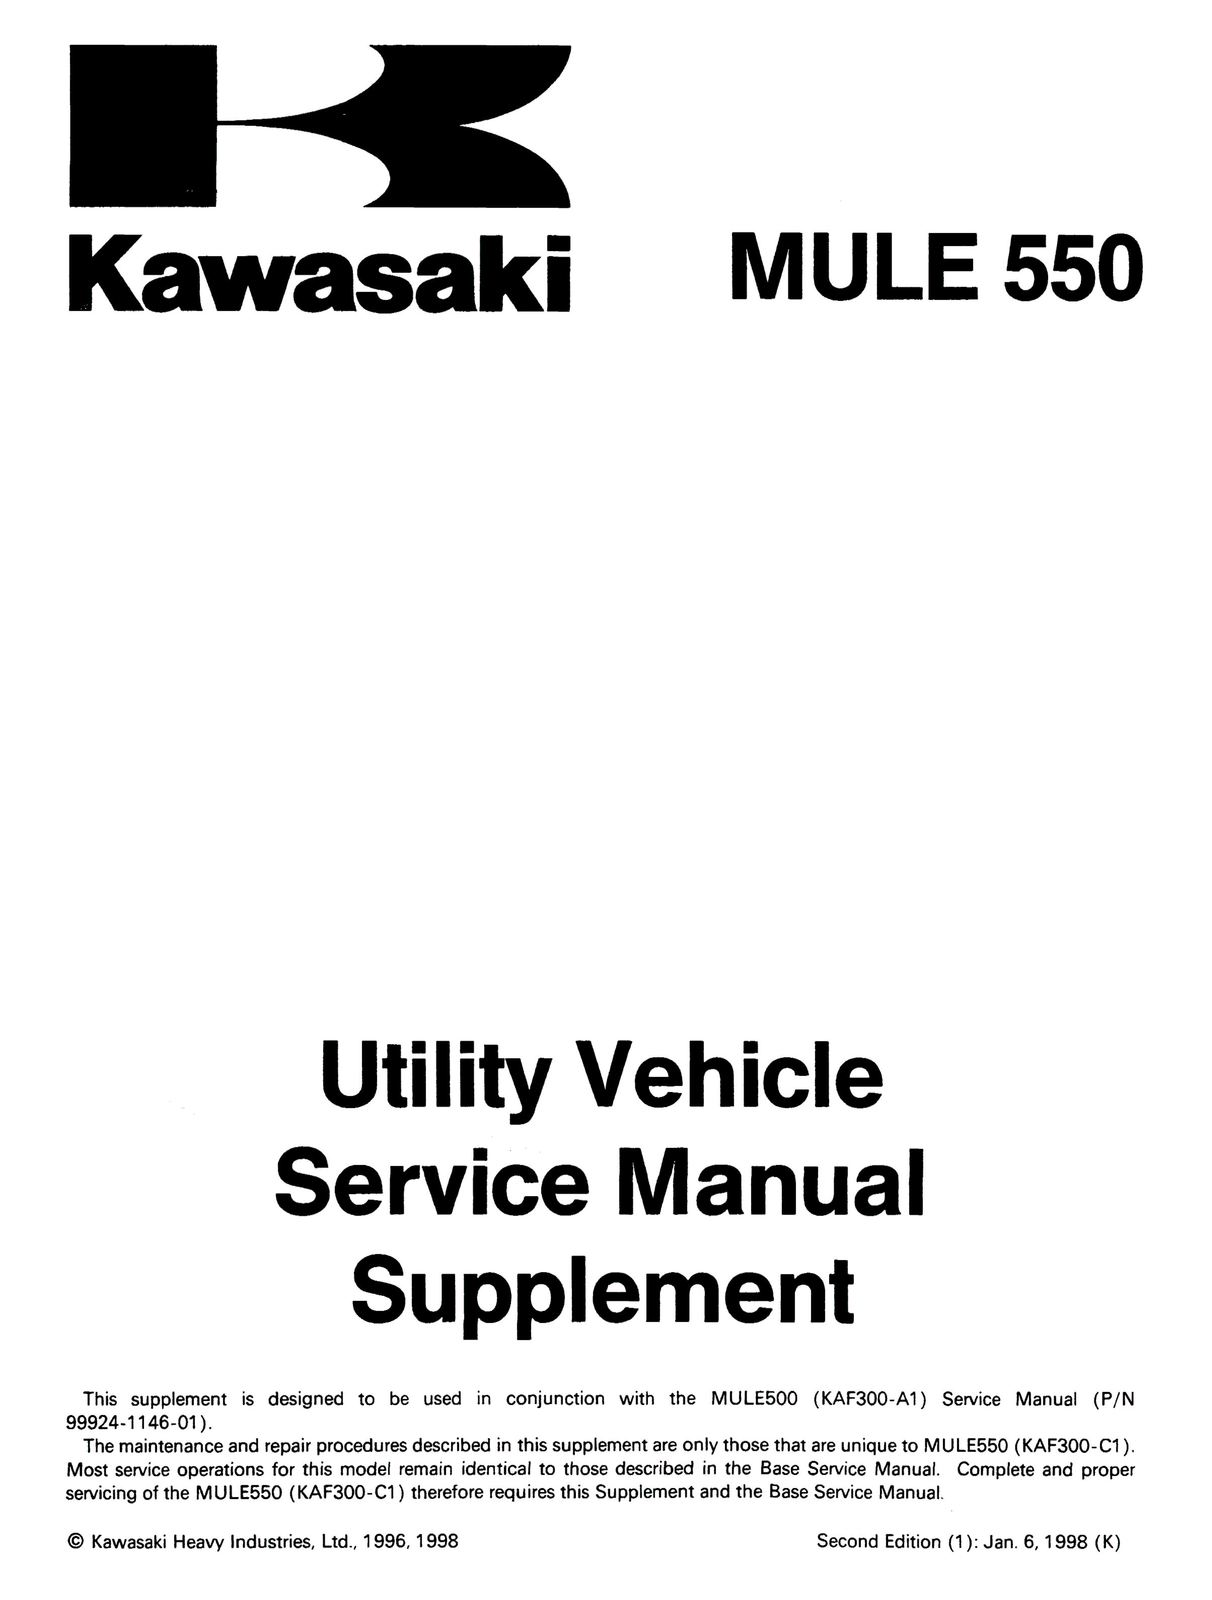 ... Kawasaki Mule 500 550 Shop Service Repair Manual KAF300 91 92 93 94 95  96 97